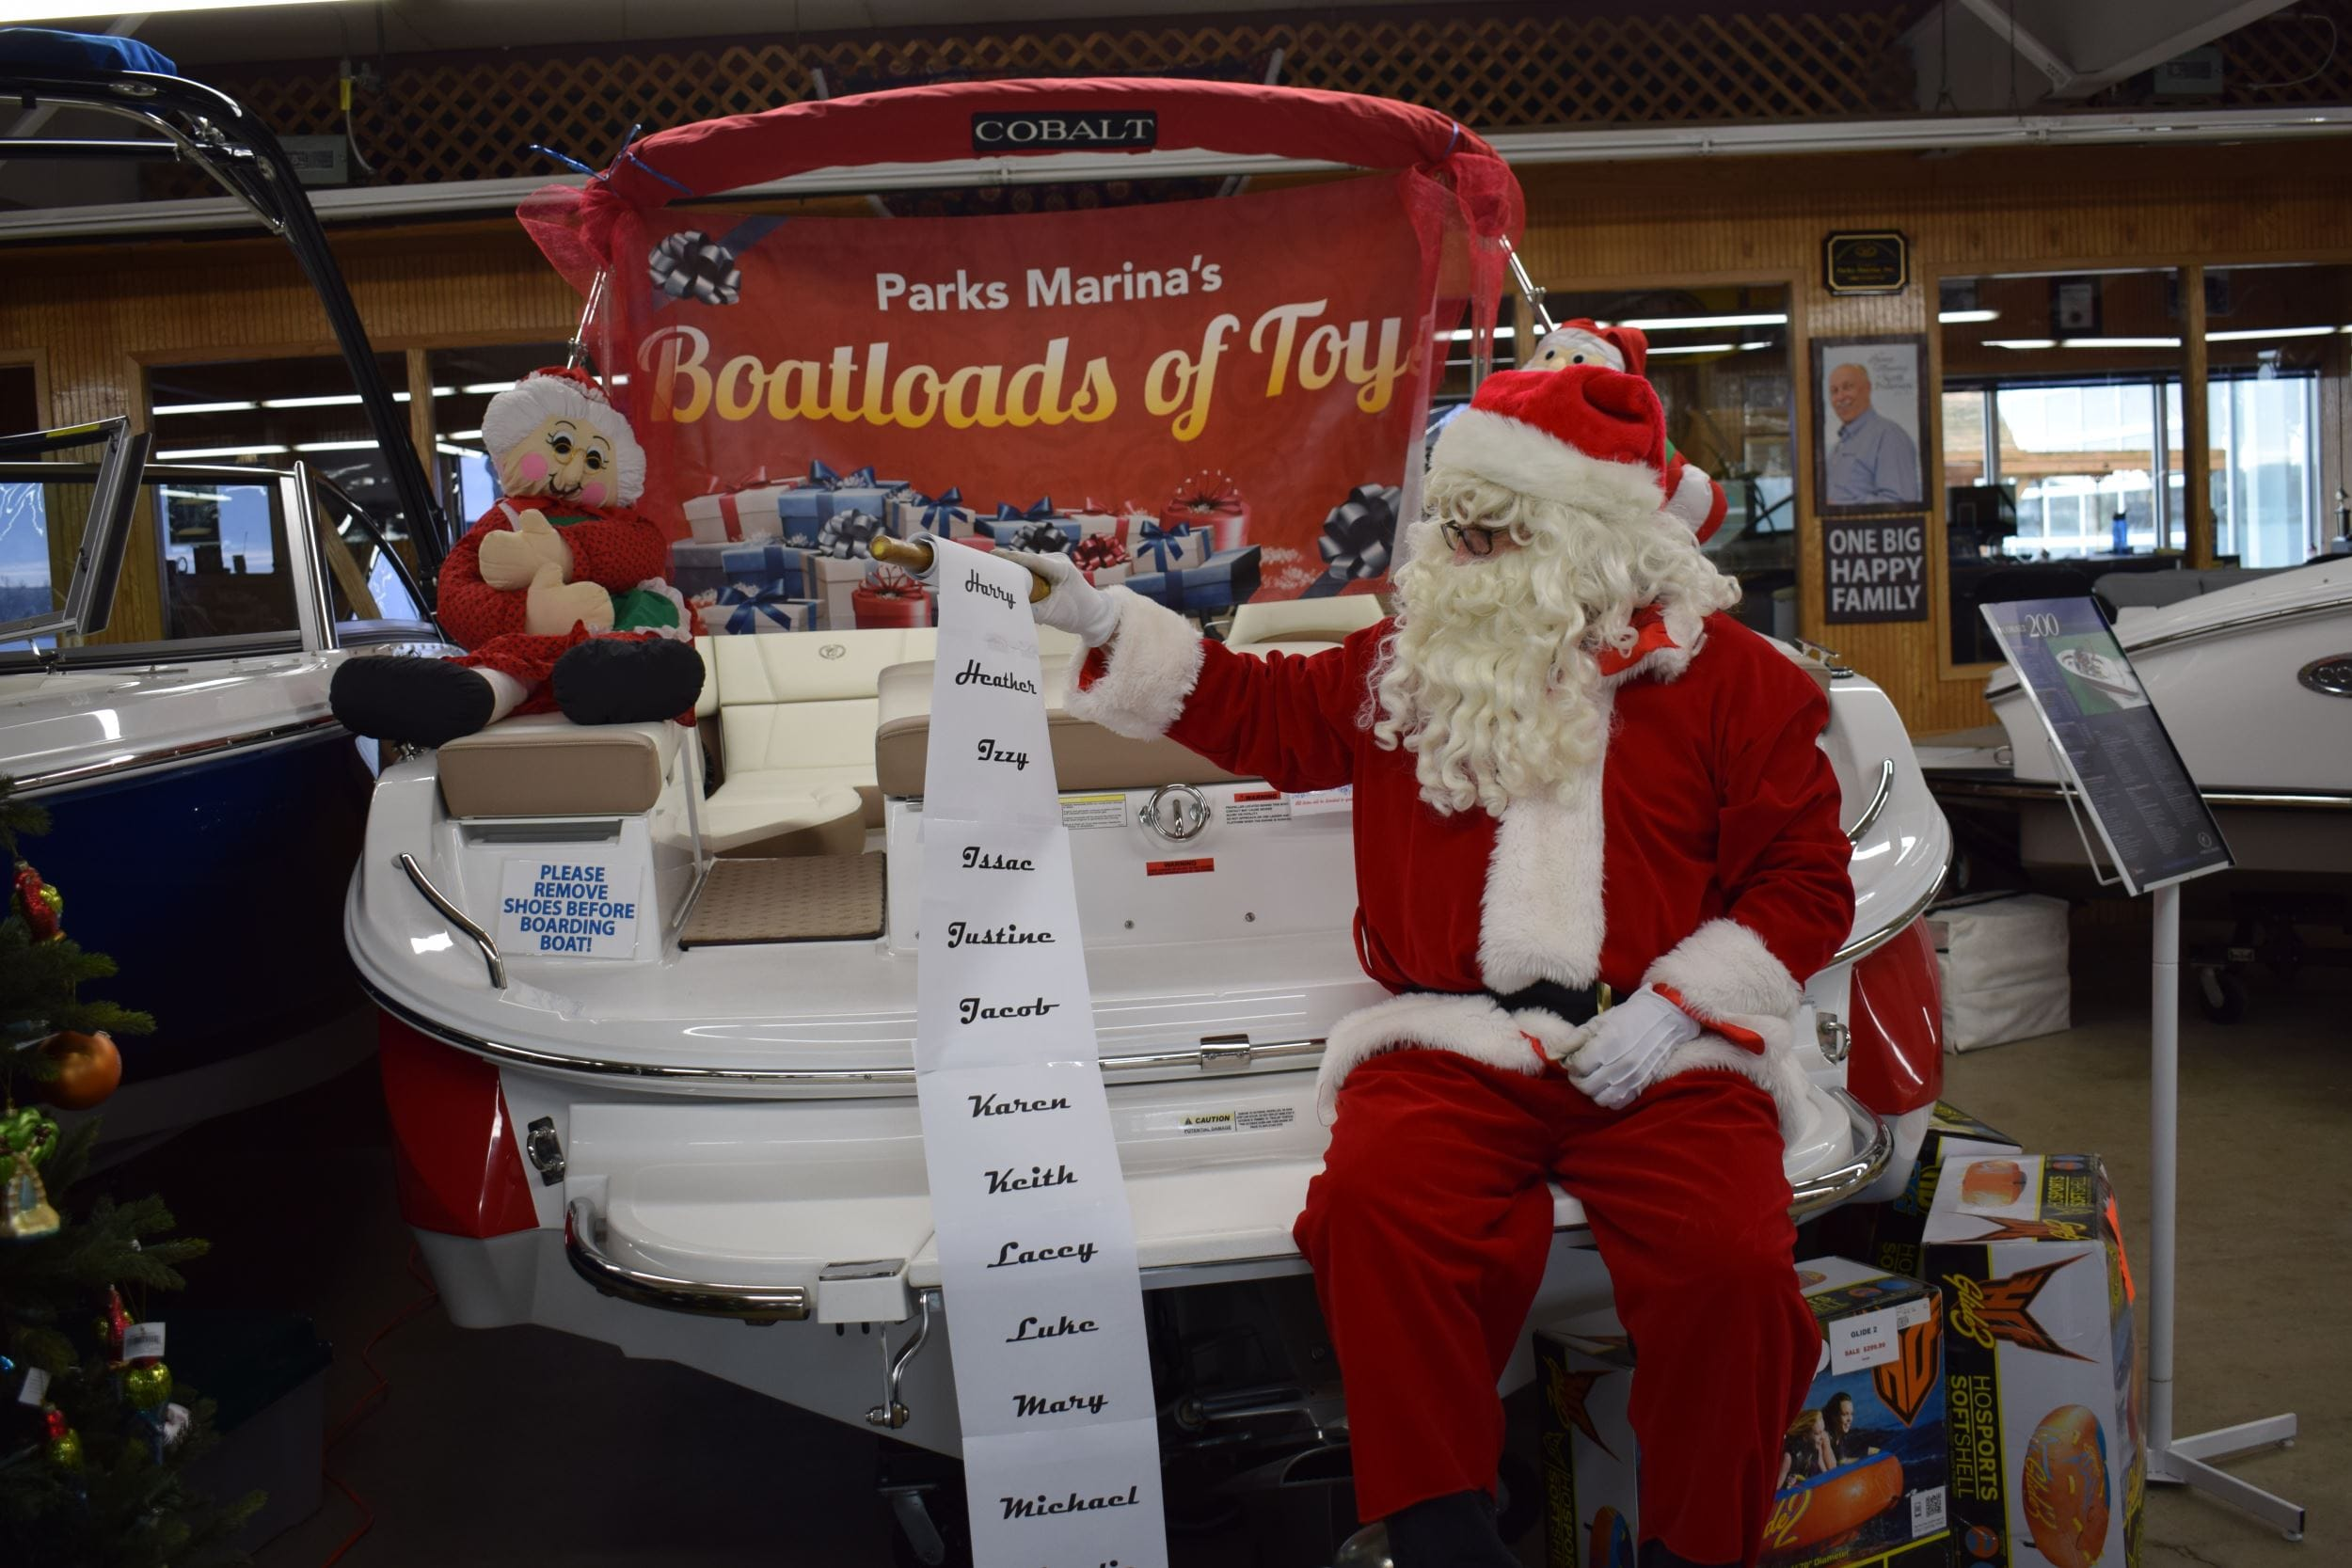 10th Annual Boatloads of Toys Kicks Off